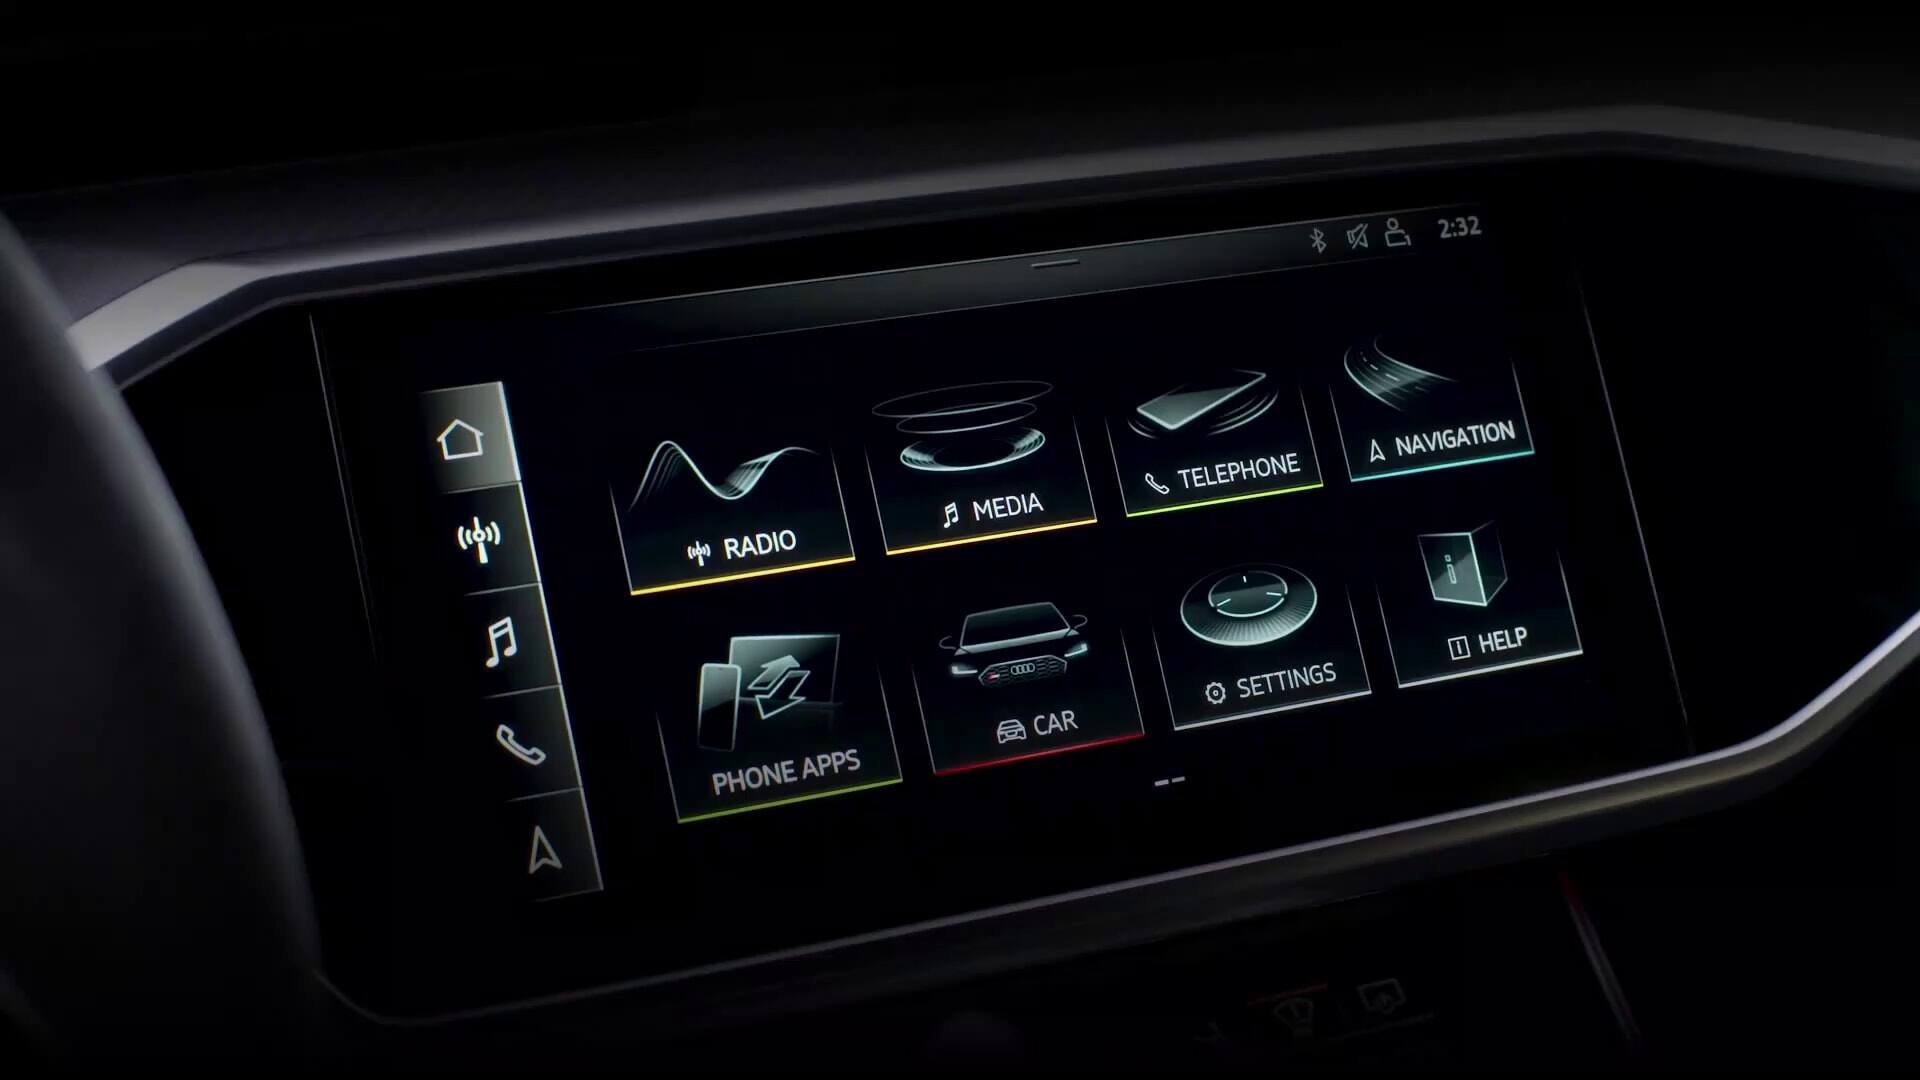 RS 7 MMI Touchscreen